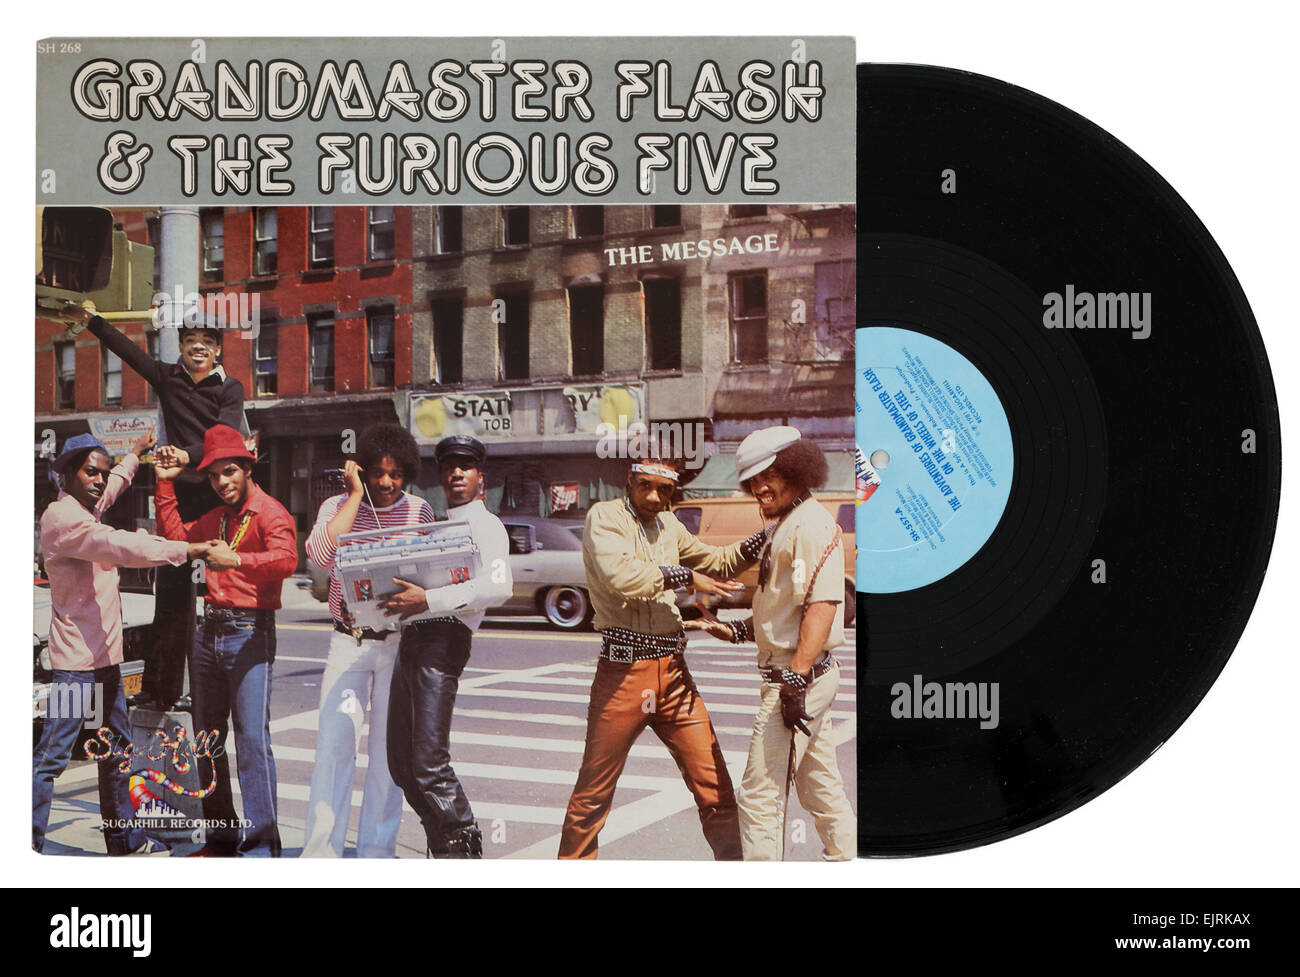 Grandmaster Flash and the Furious Five album The Message - Stock Image